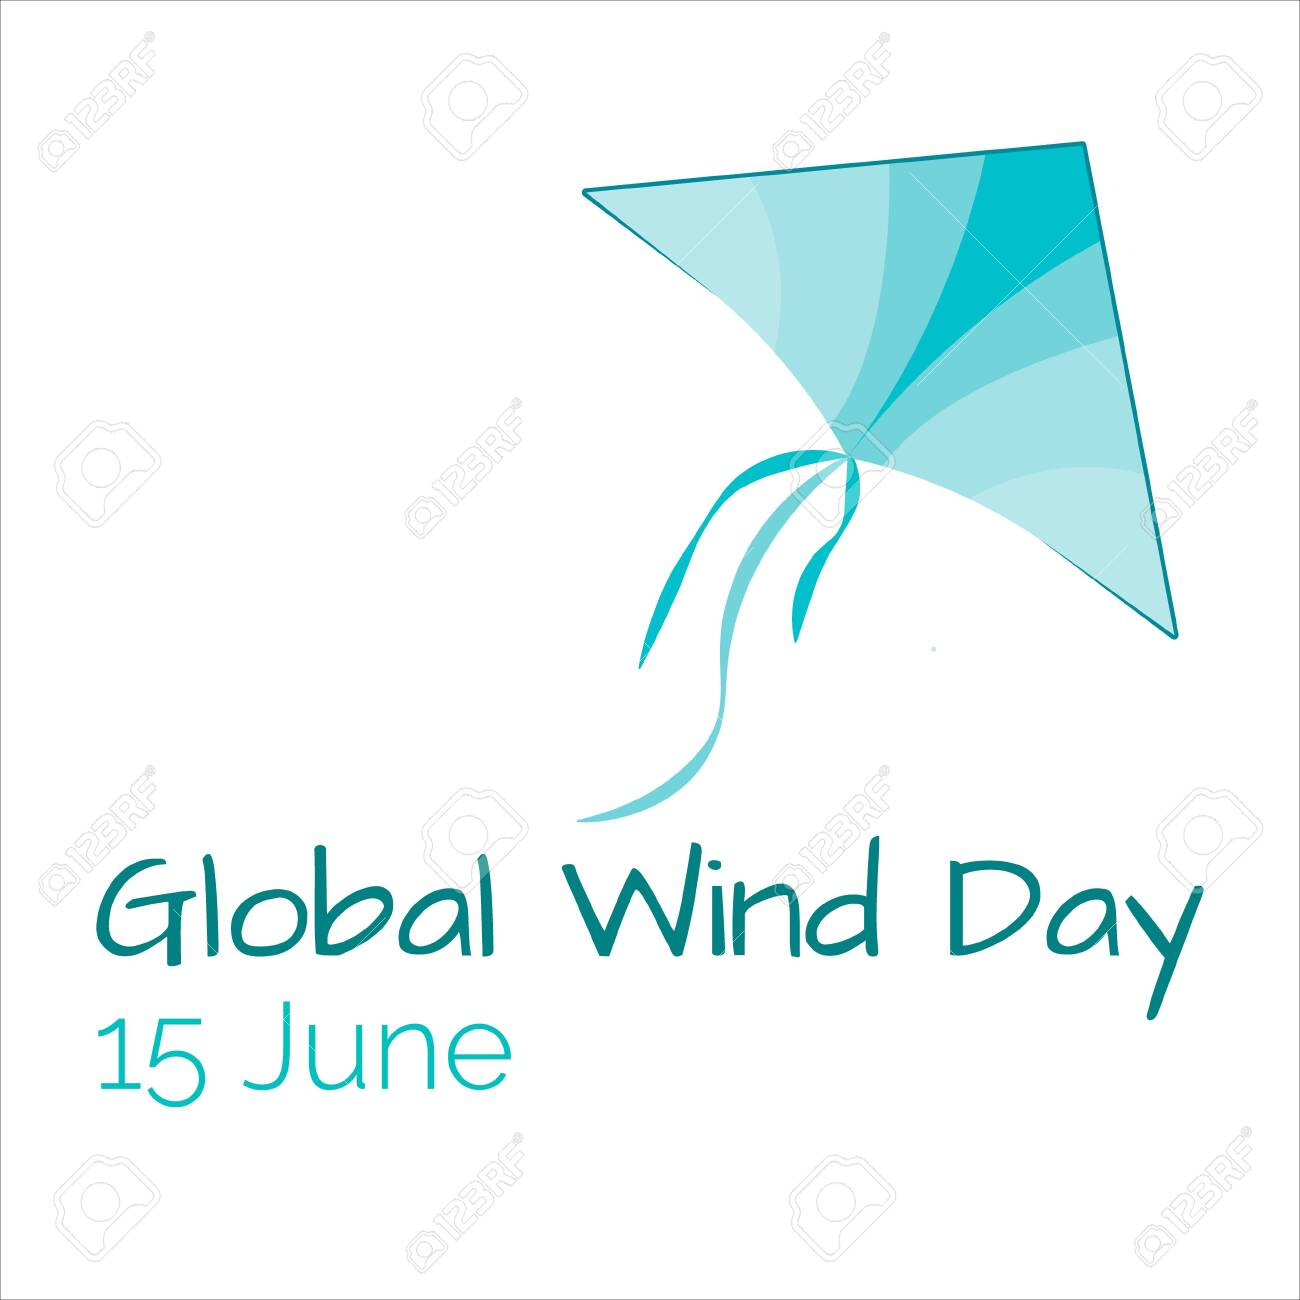 Icon of kite, eco technology, green energy, 15 June Global Wind Day - 148611882